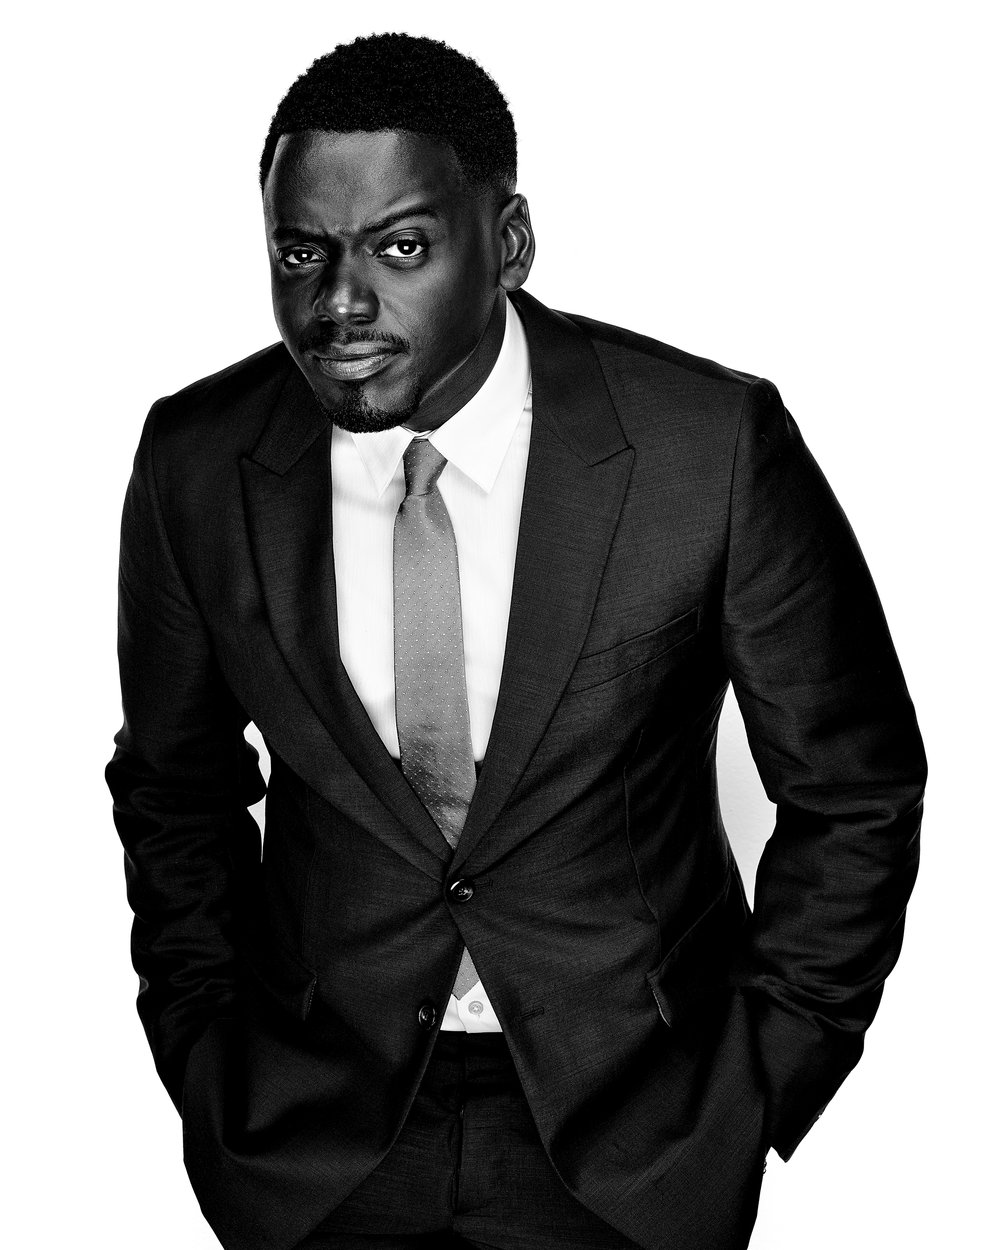 Daniel Kaluuya_0070++RT_layered.jpg